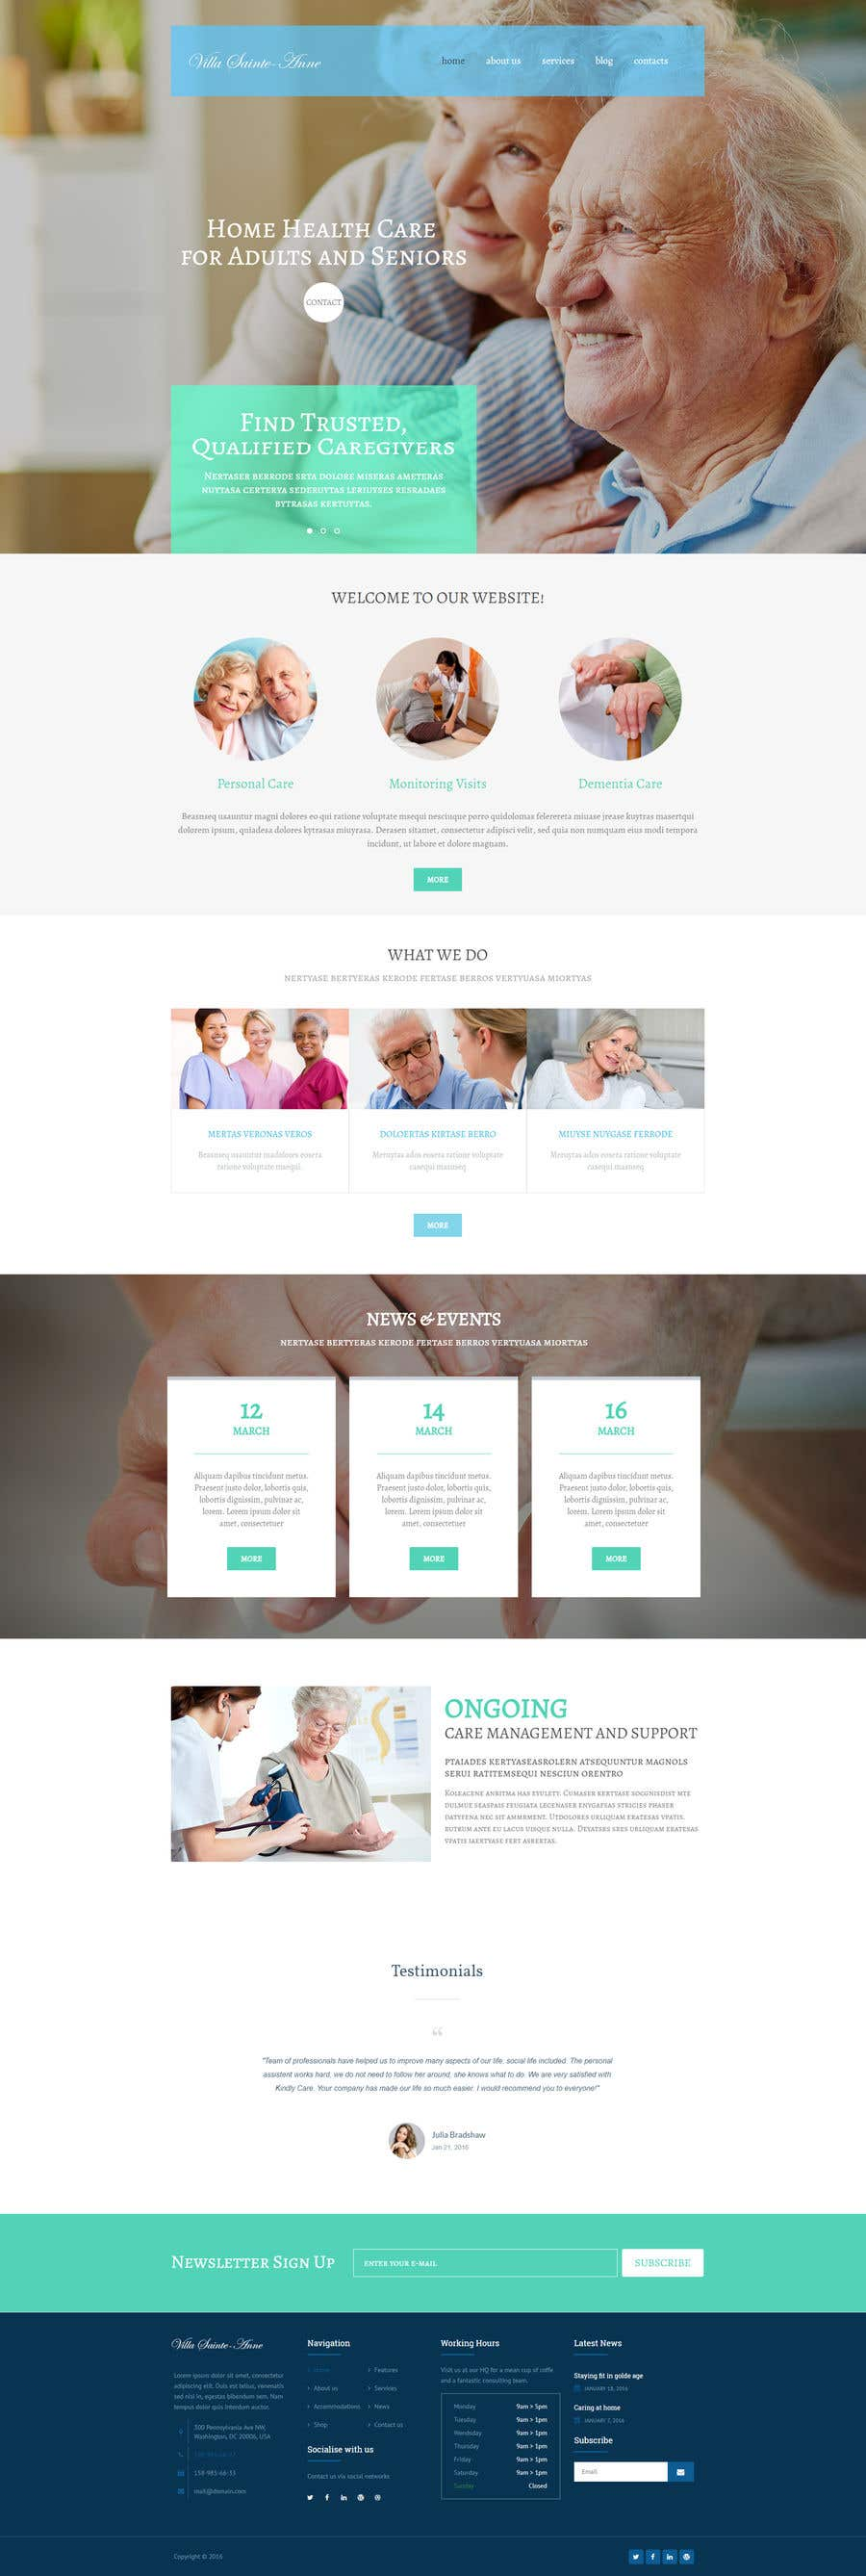 Penyertaan Peraduan #4 untuk Make a website mockup / visual design for our senior care home